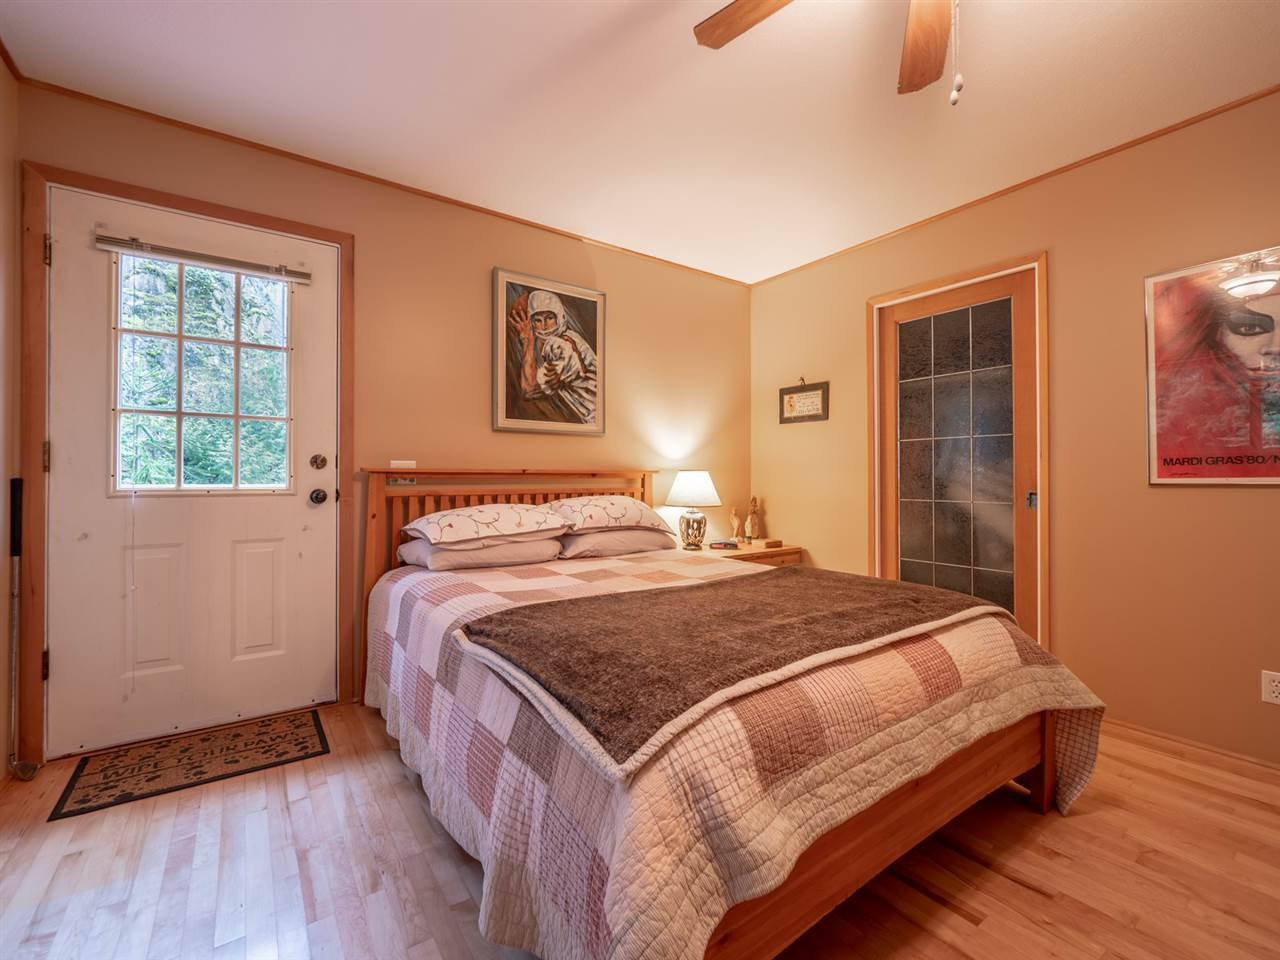 Photo 10: Photos: 12674 MERRILL Crescent in Pender Harbour: Pender Harbour Egmont House for sale (Sunshine Coast)  : MLS®# R2337589